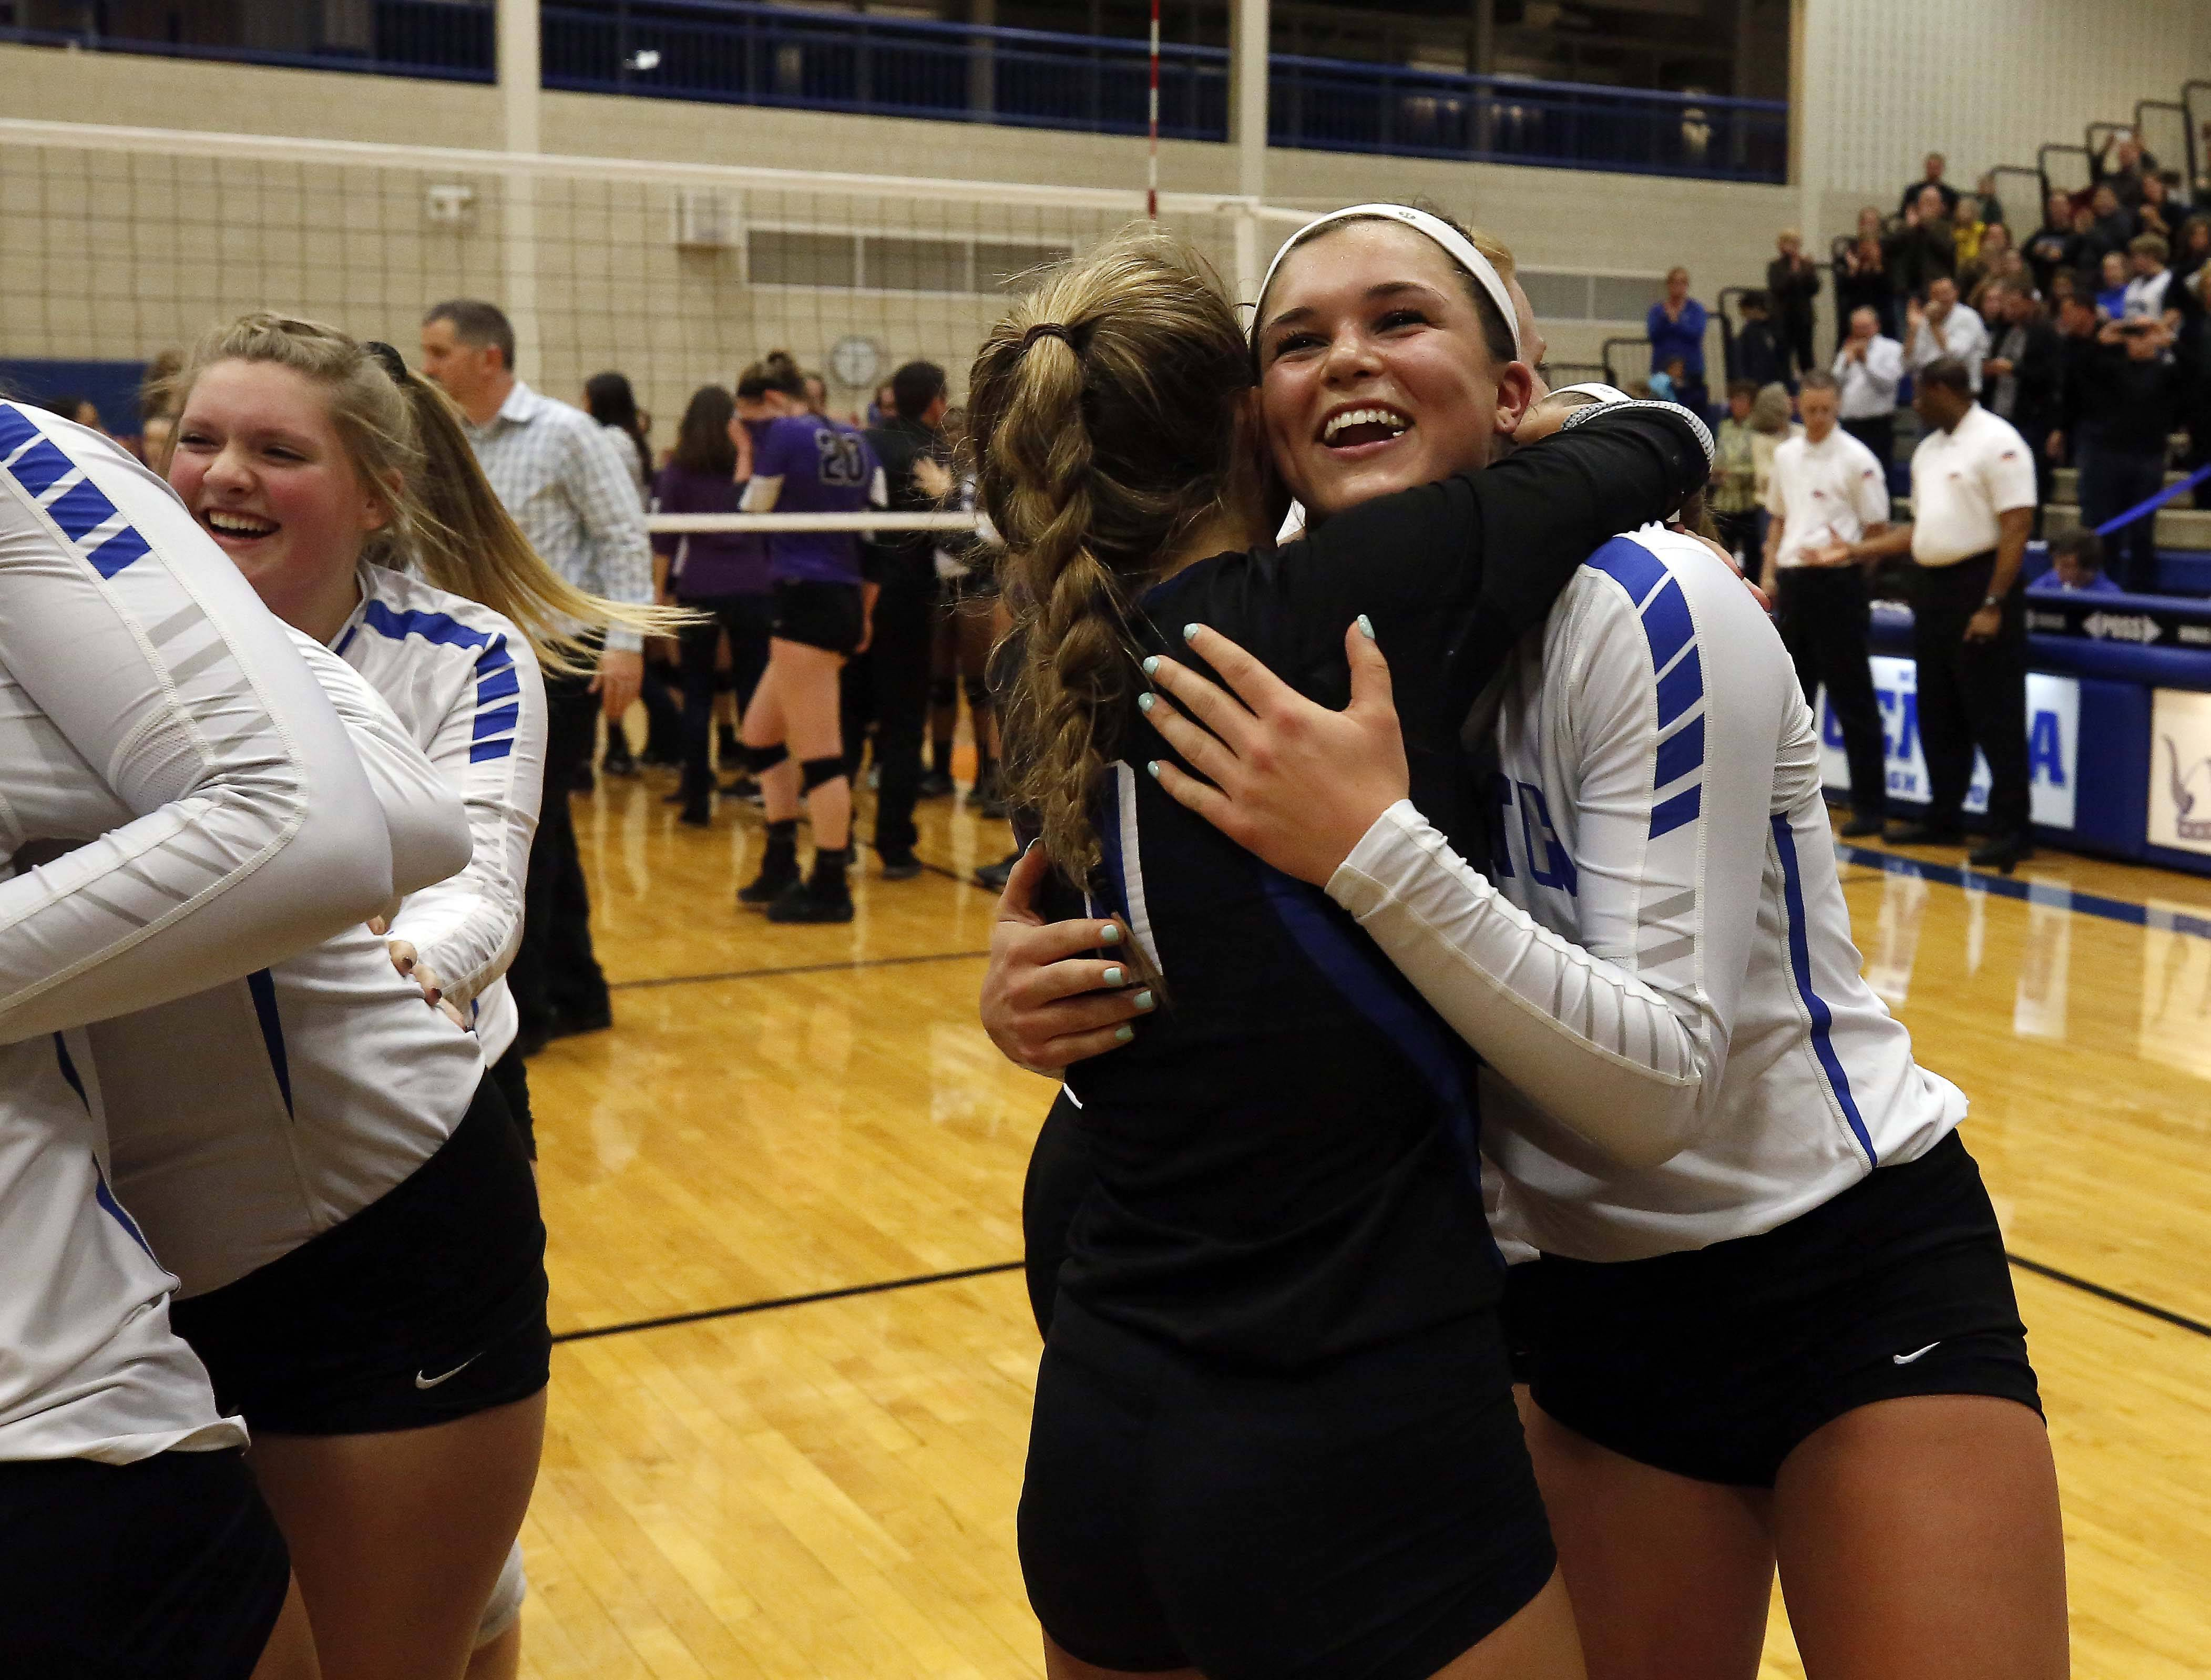 St. Charles North celebrates defeating Downers Grove North Friday in the Geneva volleyball supersectional.